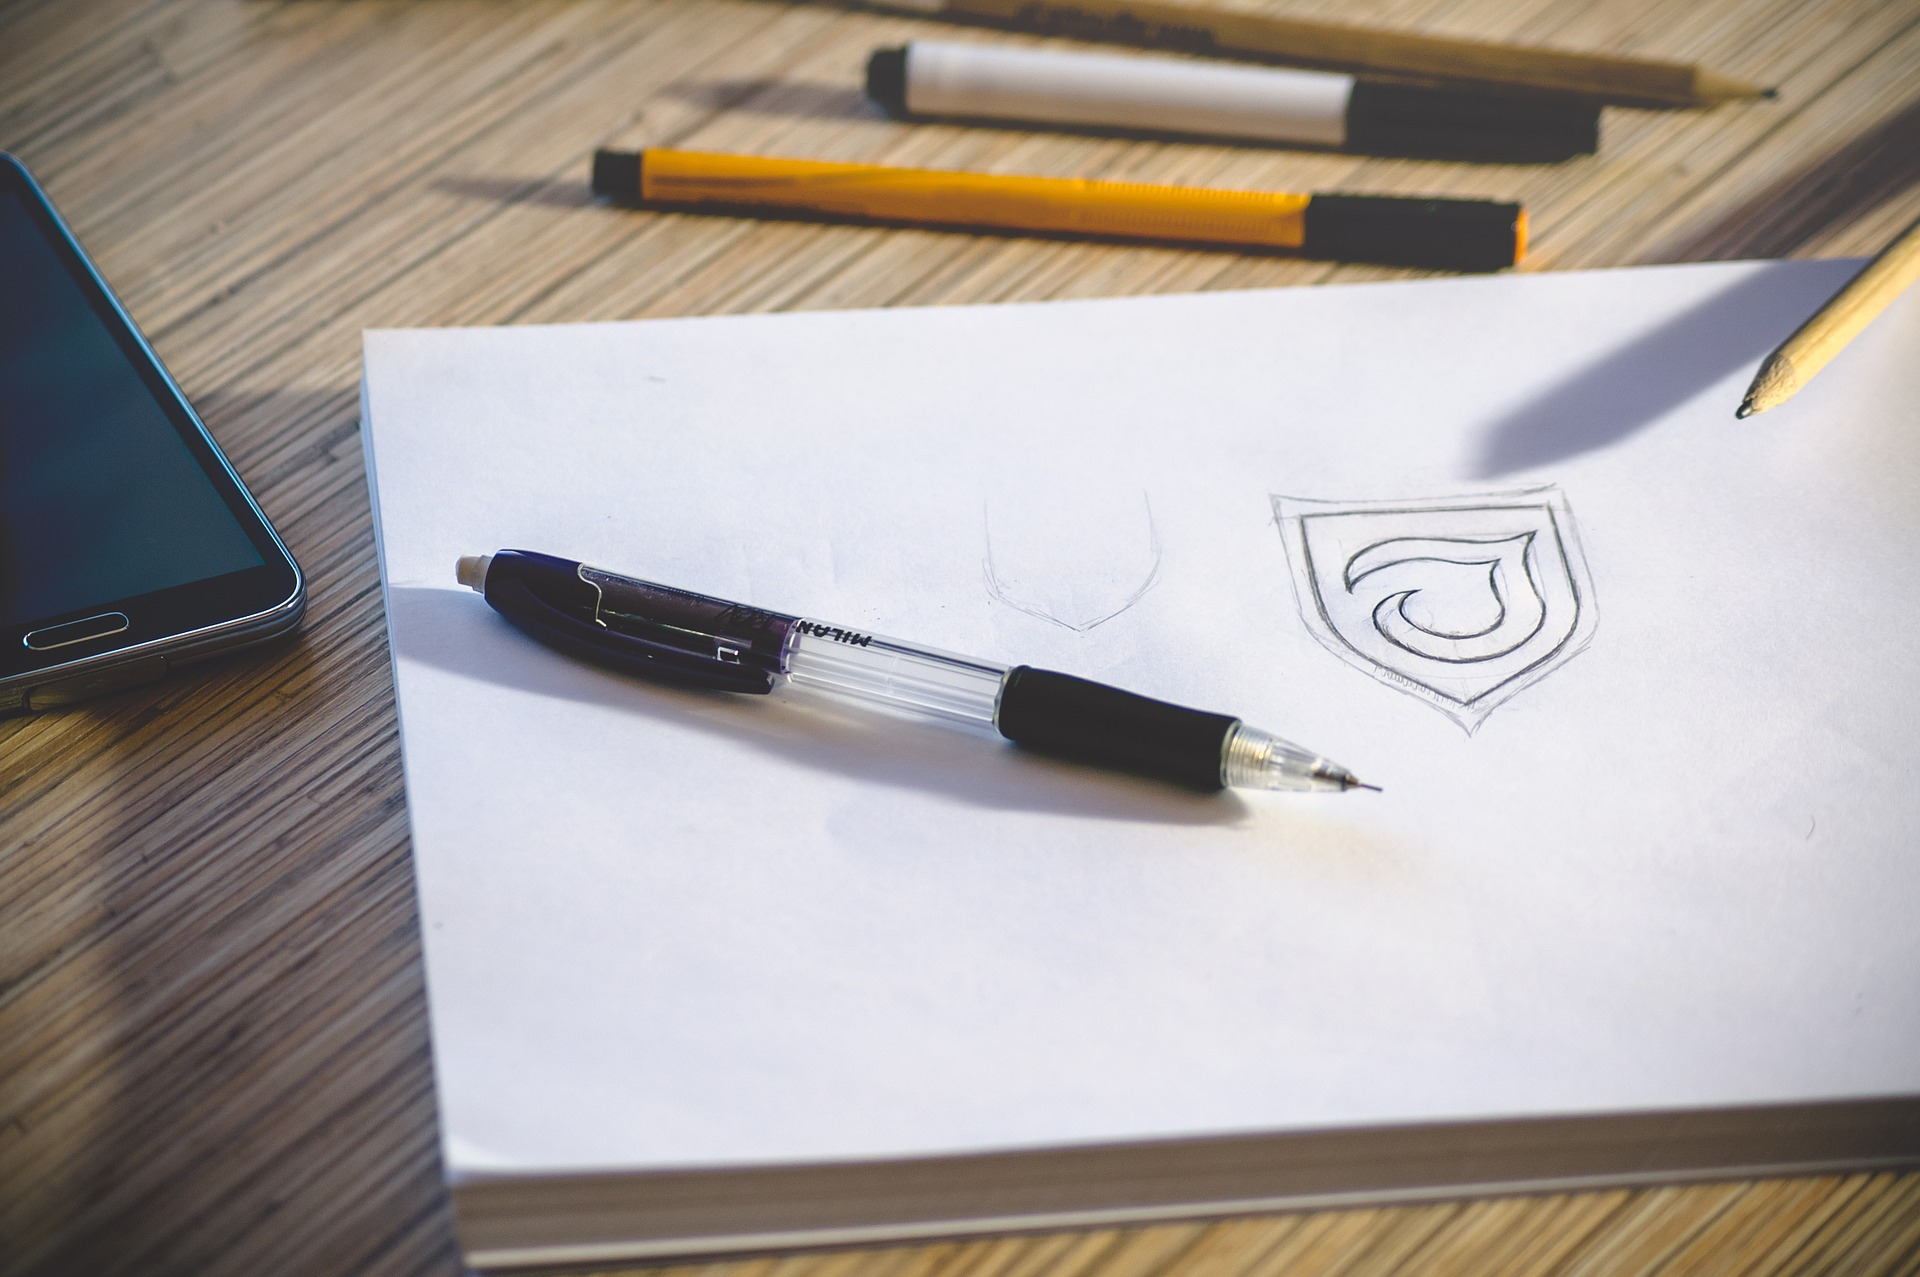 Design Logos Like a Pro With These 9 Fundamental Principles